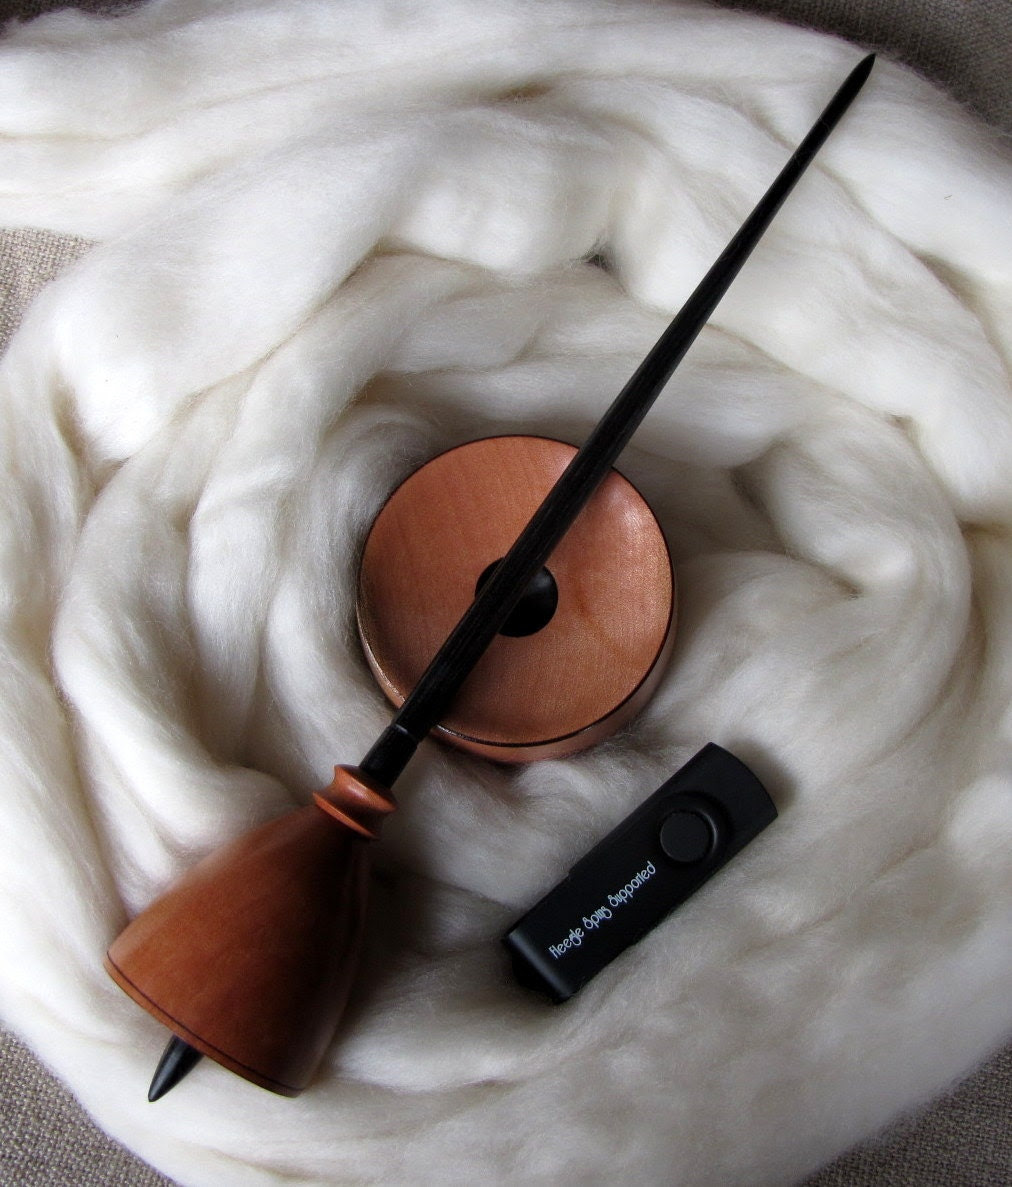 Support spindling starter pack - spindle, bowl, fibre, e-book with instructions MADE TO ORDER